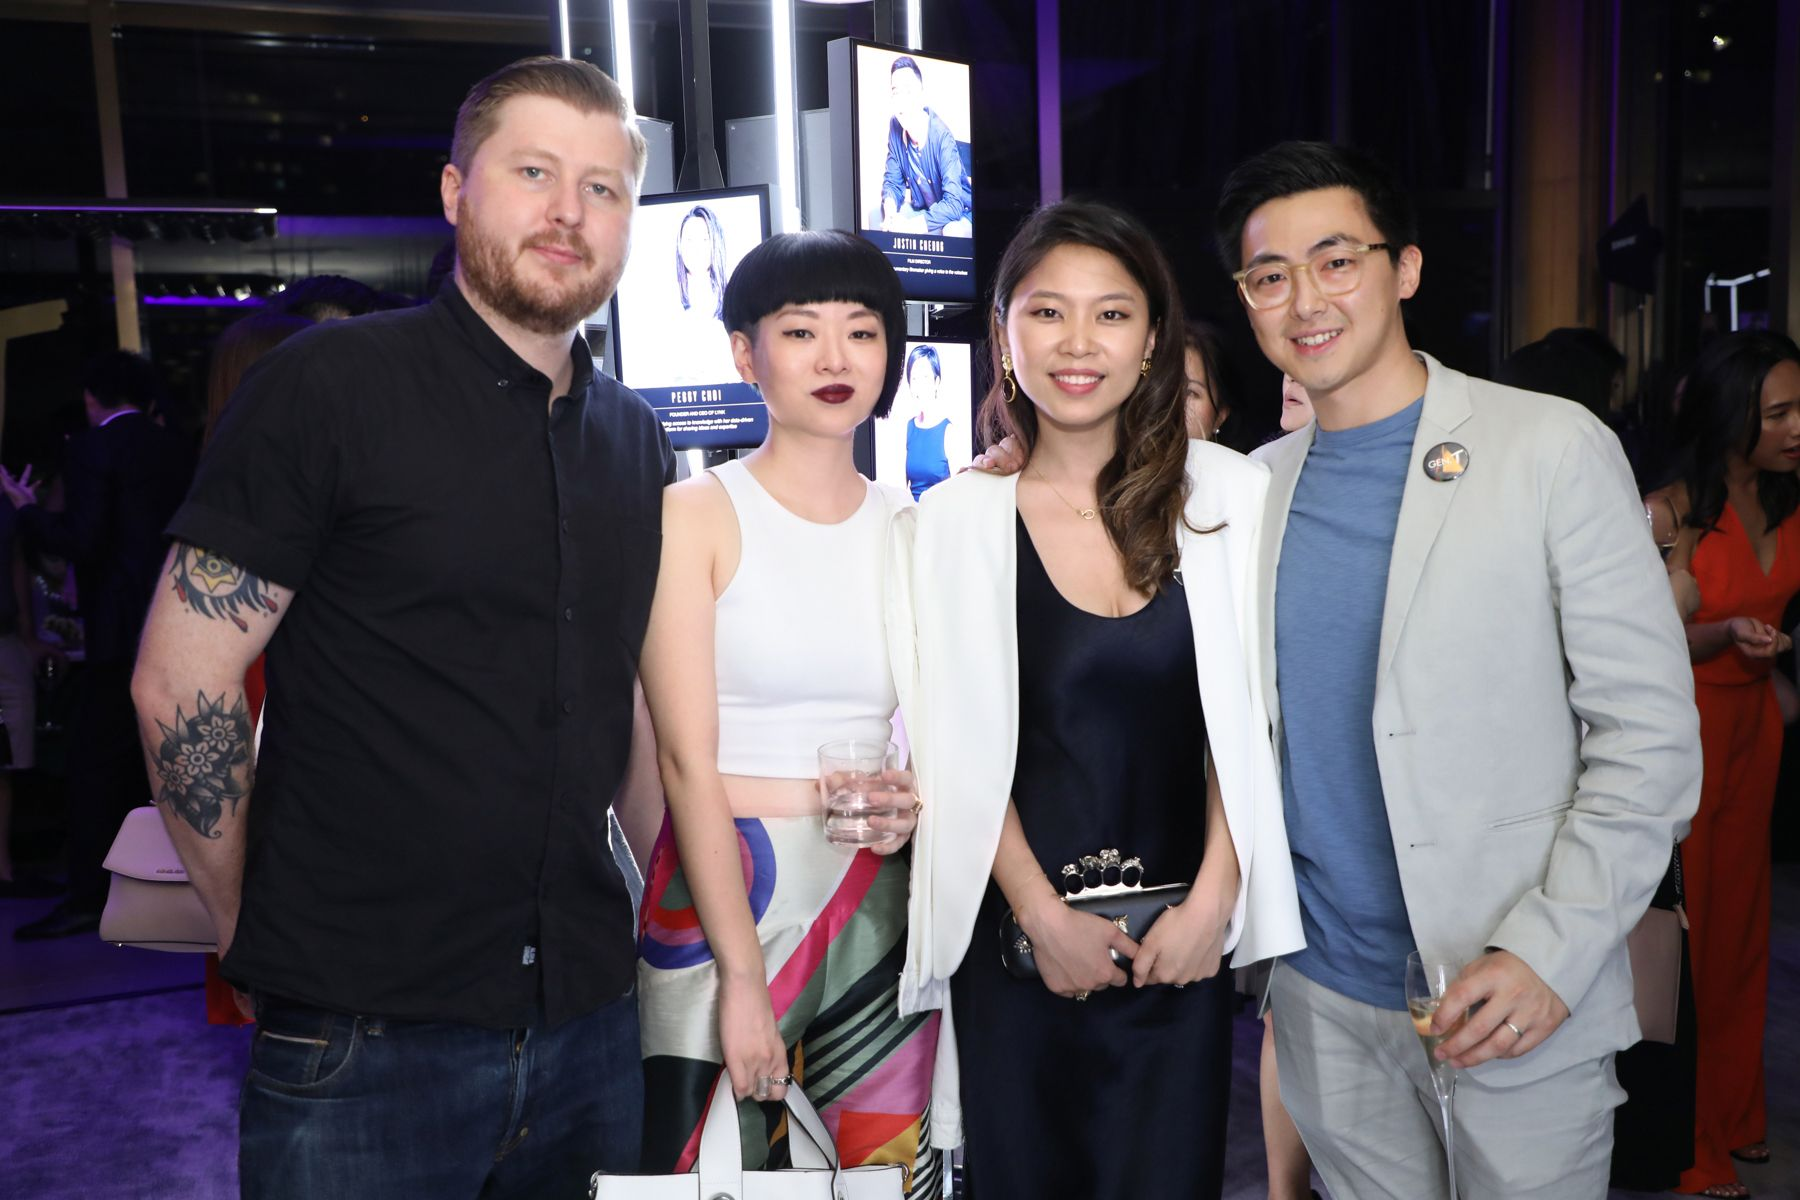 Peter Yuill, Thierry Chow, Elaine Lu, Vince Lim